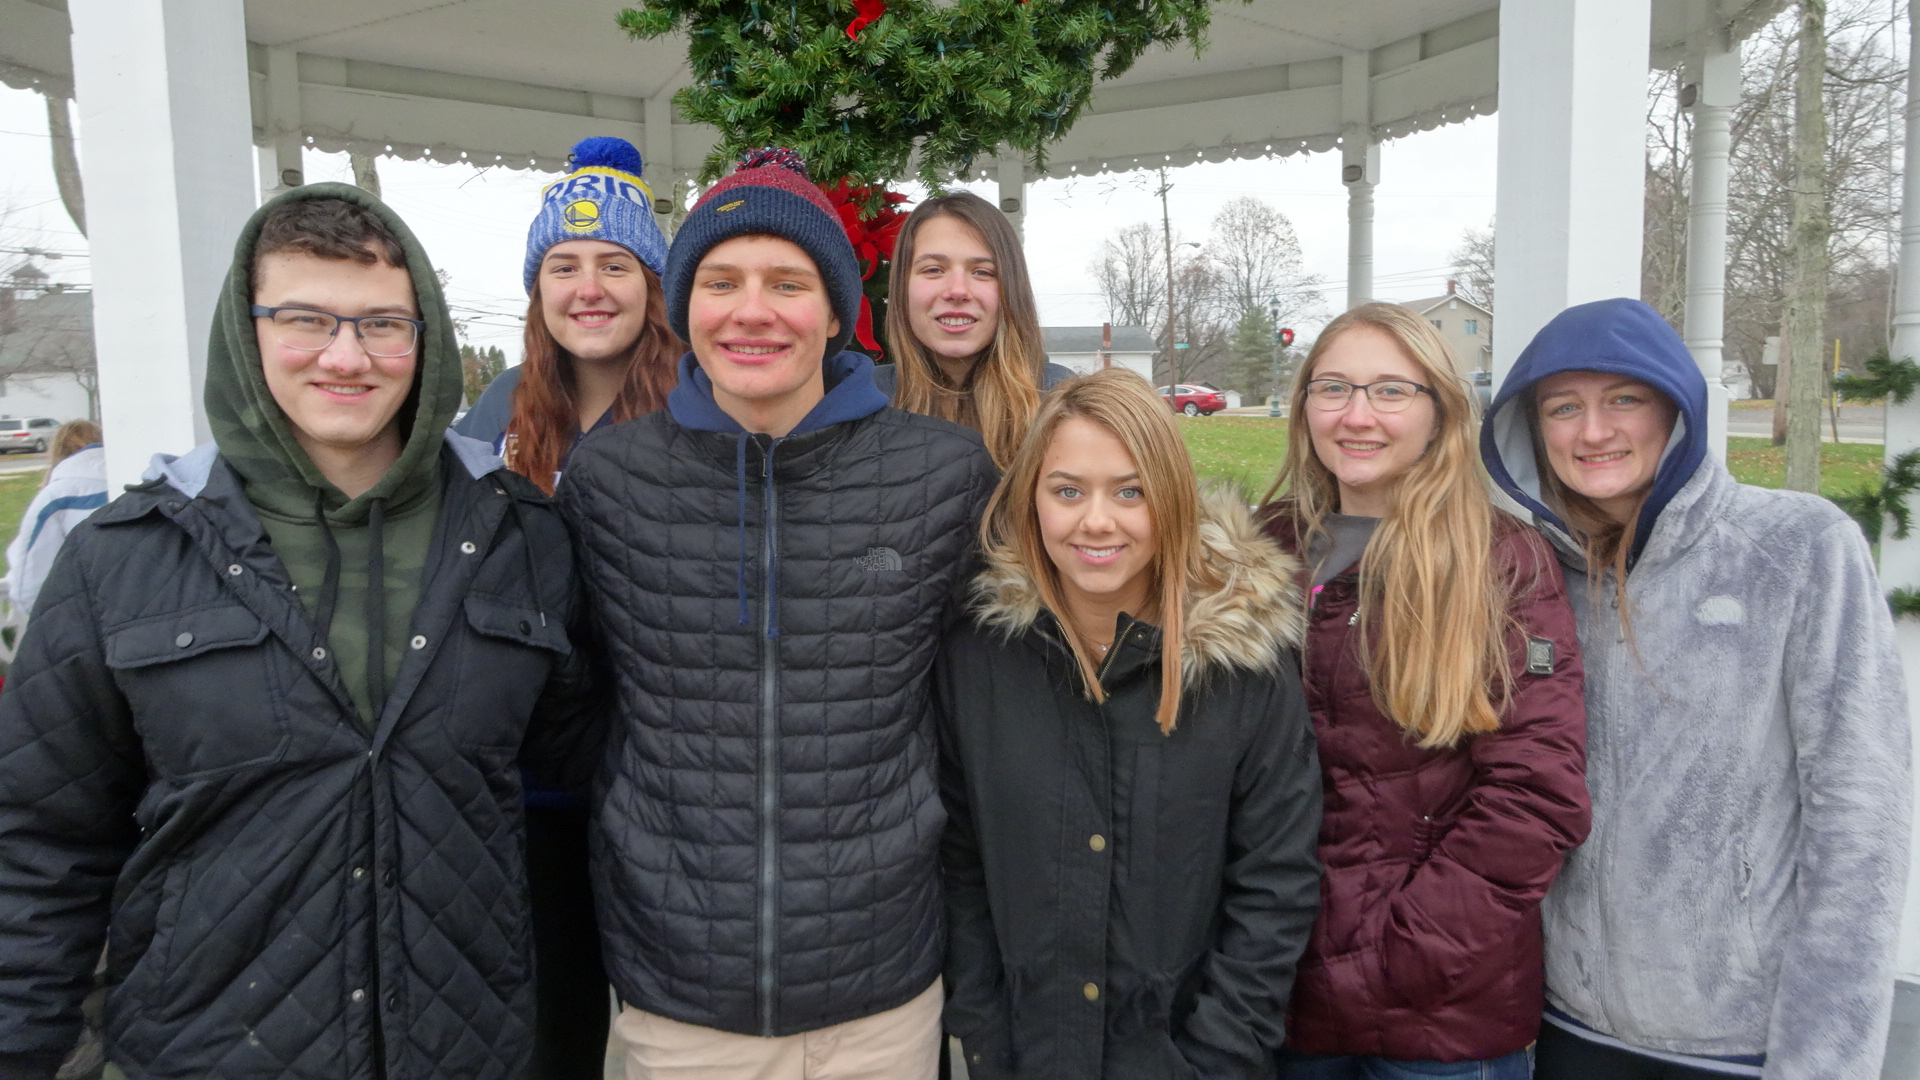 Members of the Brookfield High School Interact Club, shown here, helped members of the Brookfield Township Historical Commission and Brookfield trustees decorate the green in Brookfield Center for the holidays.